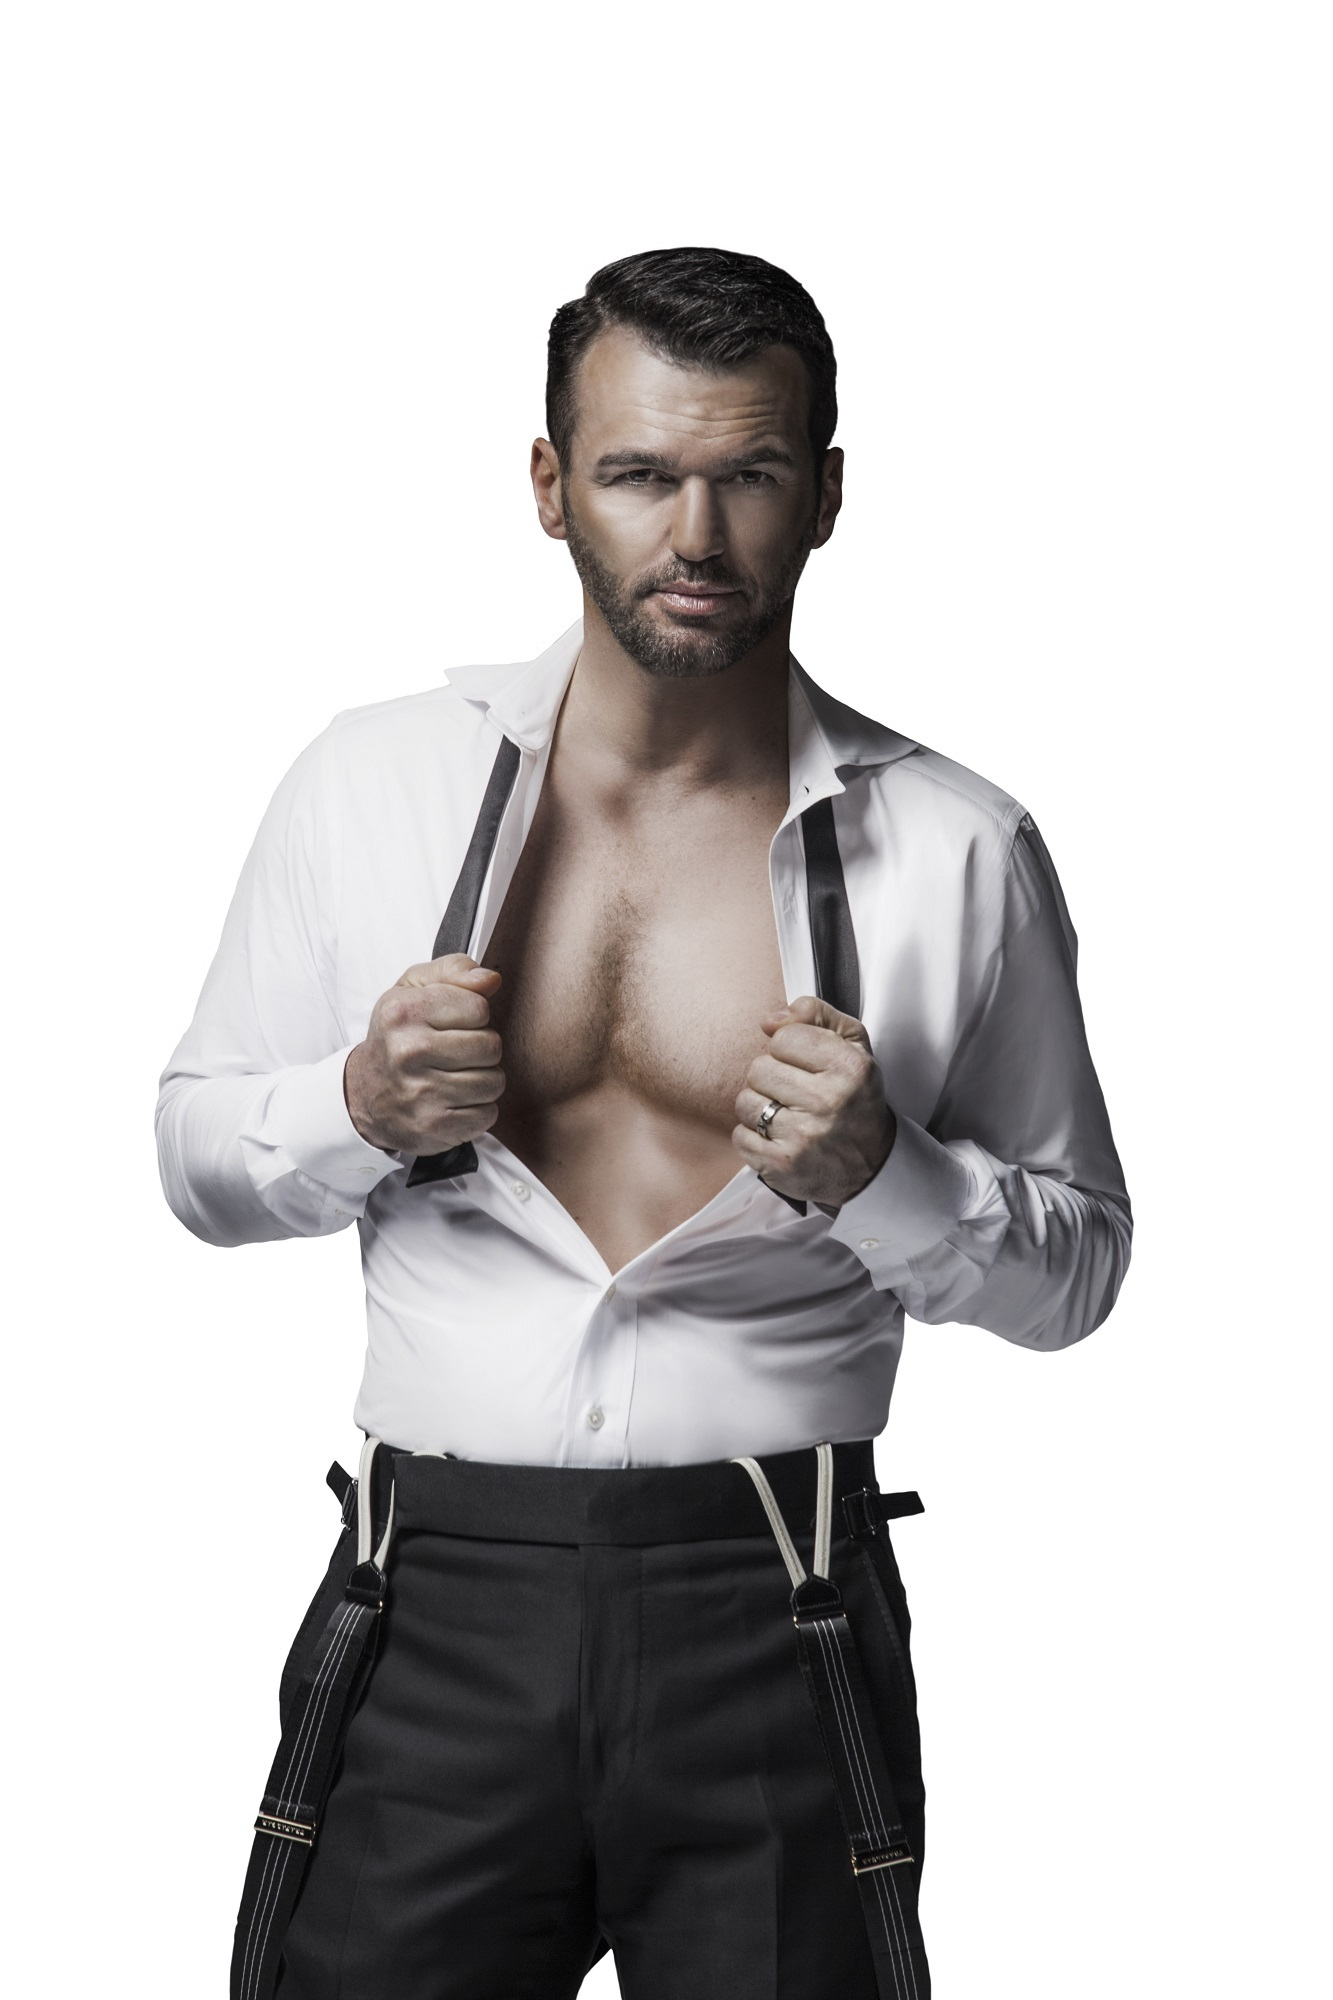 BWW Feature: 'DANCING WITH THE STARS' TONY DOVOLANI HOSTS CHIPPENDALES at Rio All-Suite Hotel & Casino